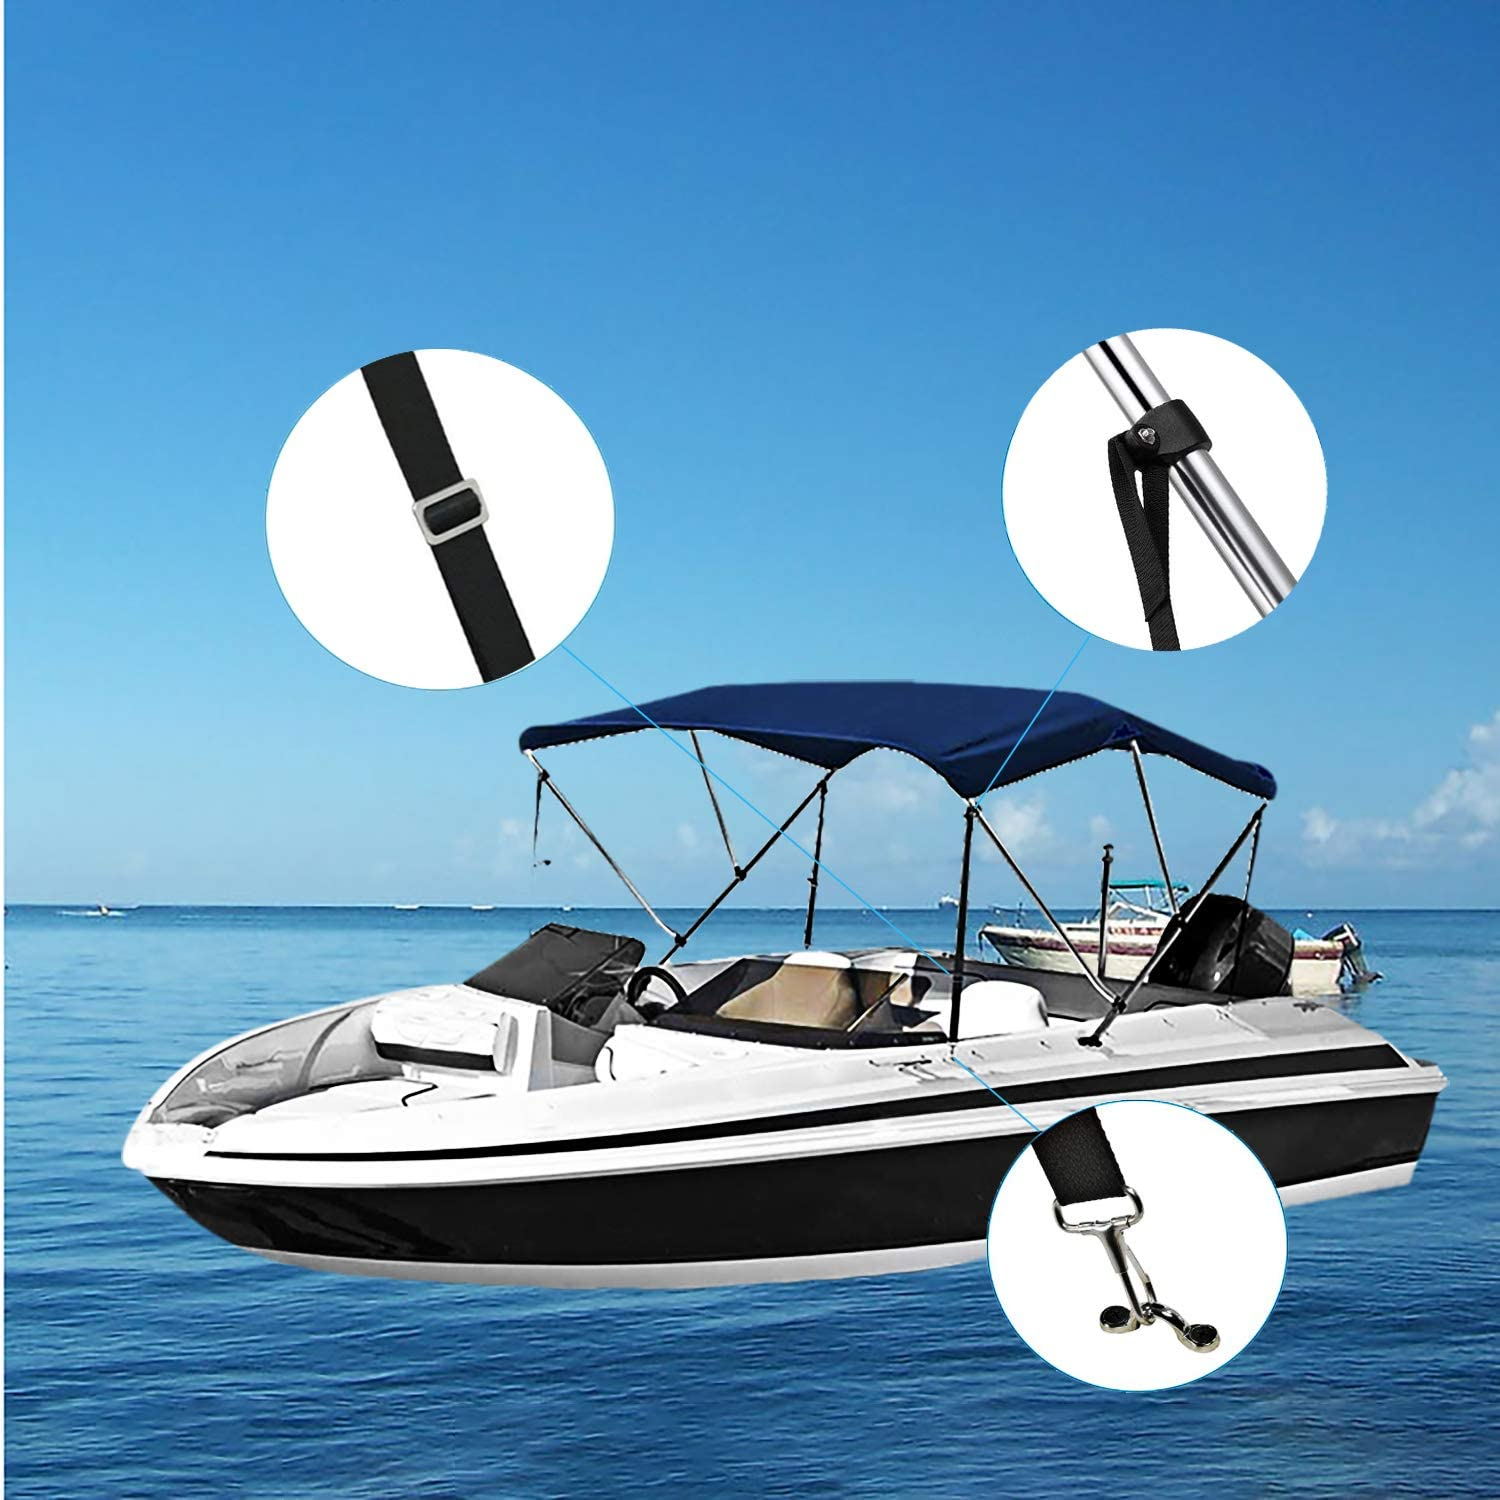 PERCARE 2 Pcs Adjustable Bimini Top Straps Black Marine Tension Tie Down Webbing Straps with Loop Snap Hooks Pad Eye Straps,28~60 Stainless Steel Boat Awning Hardware